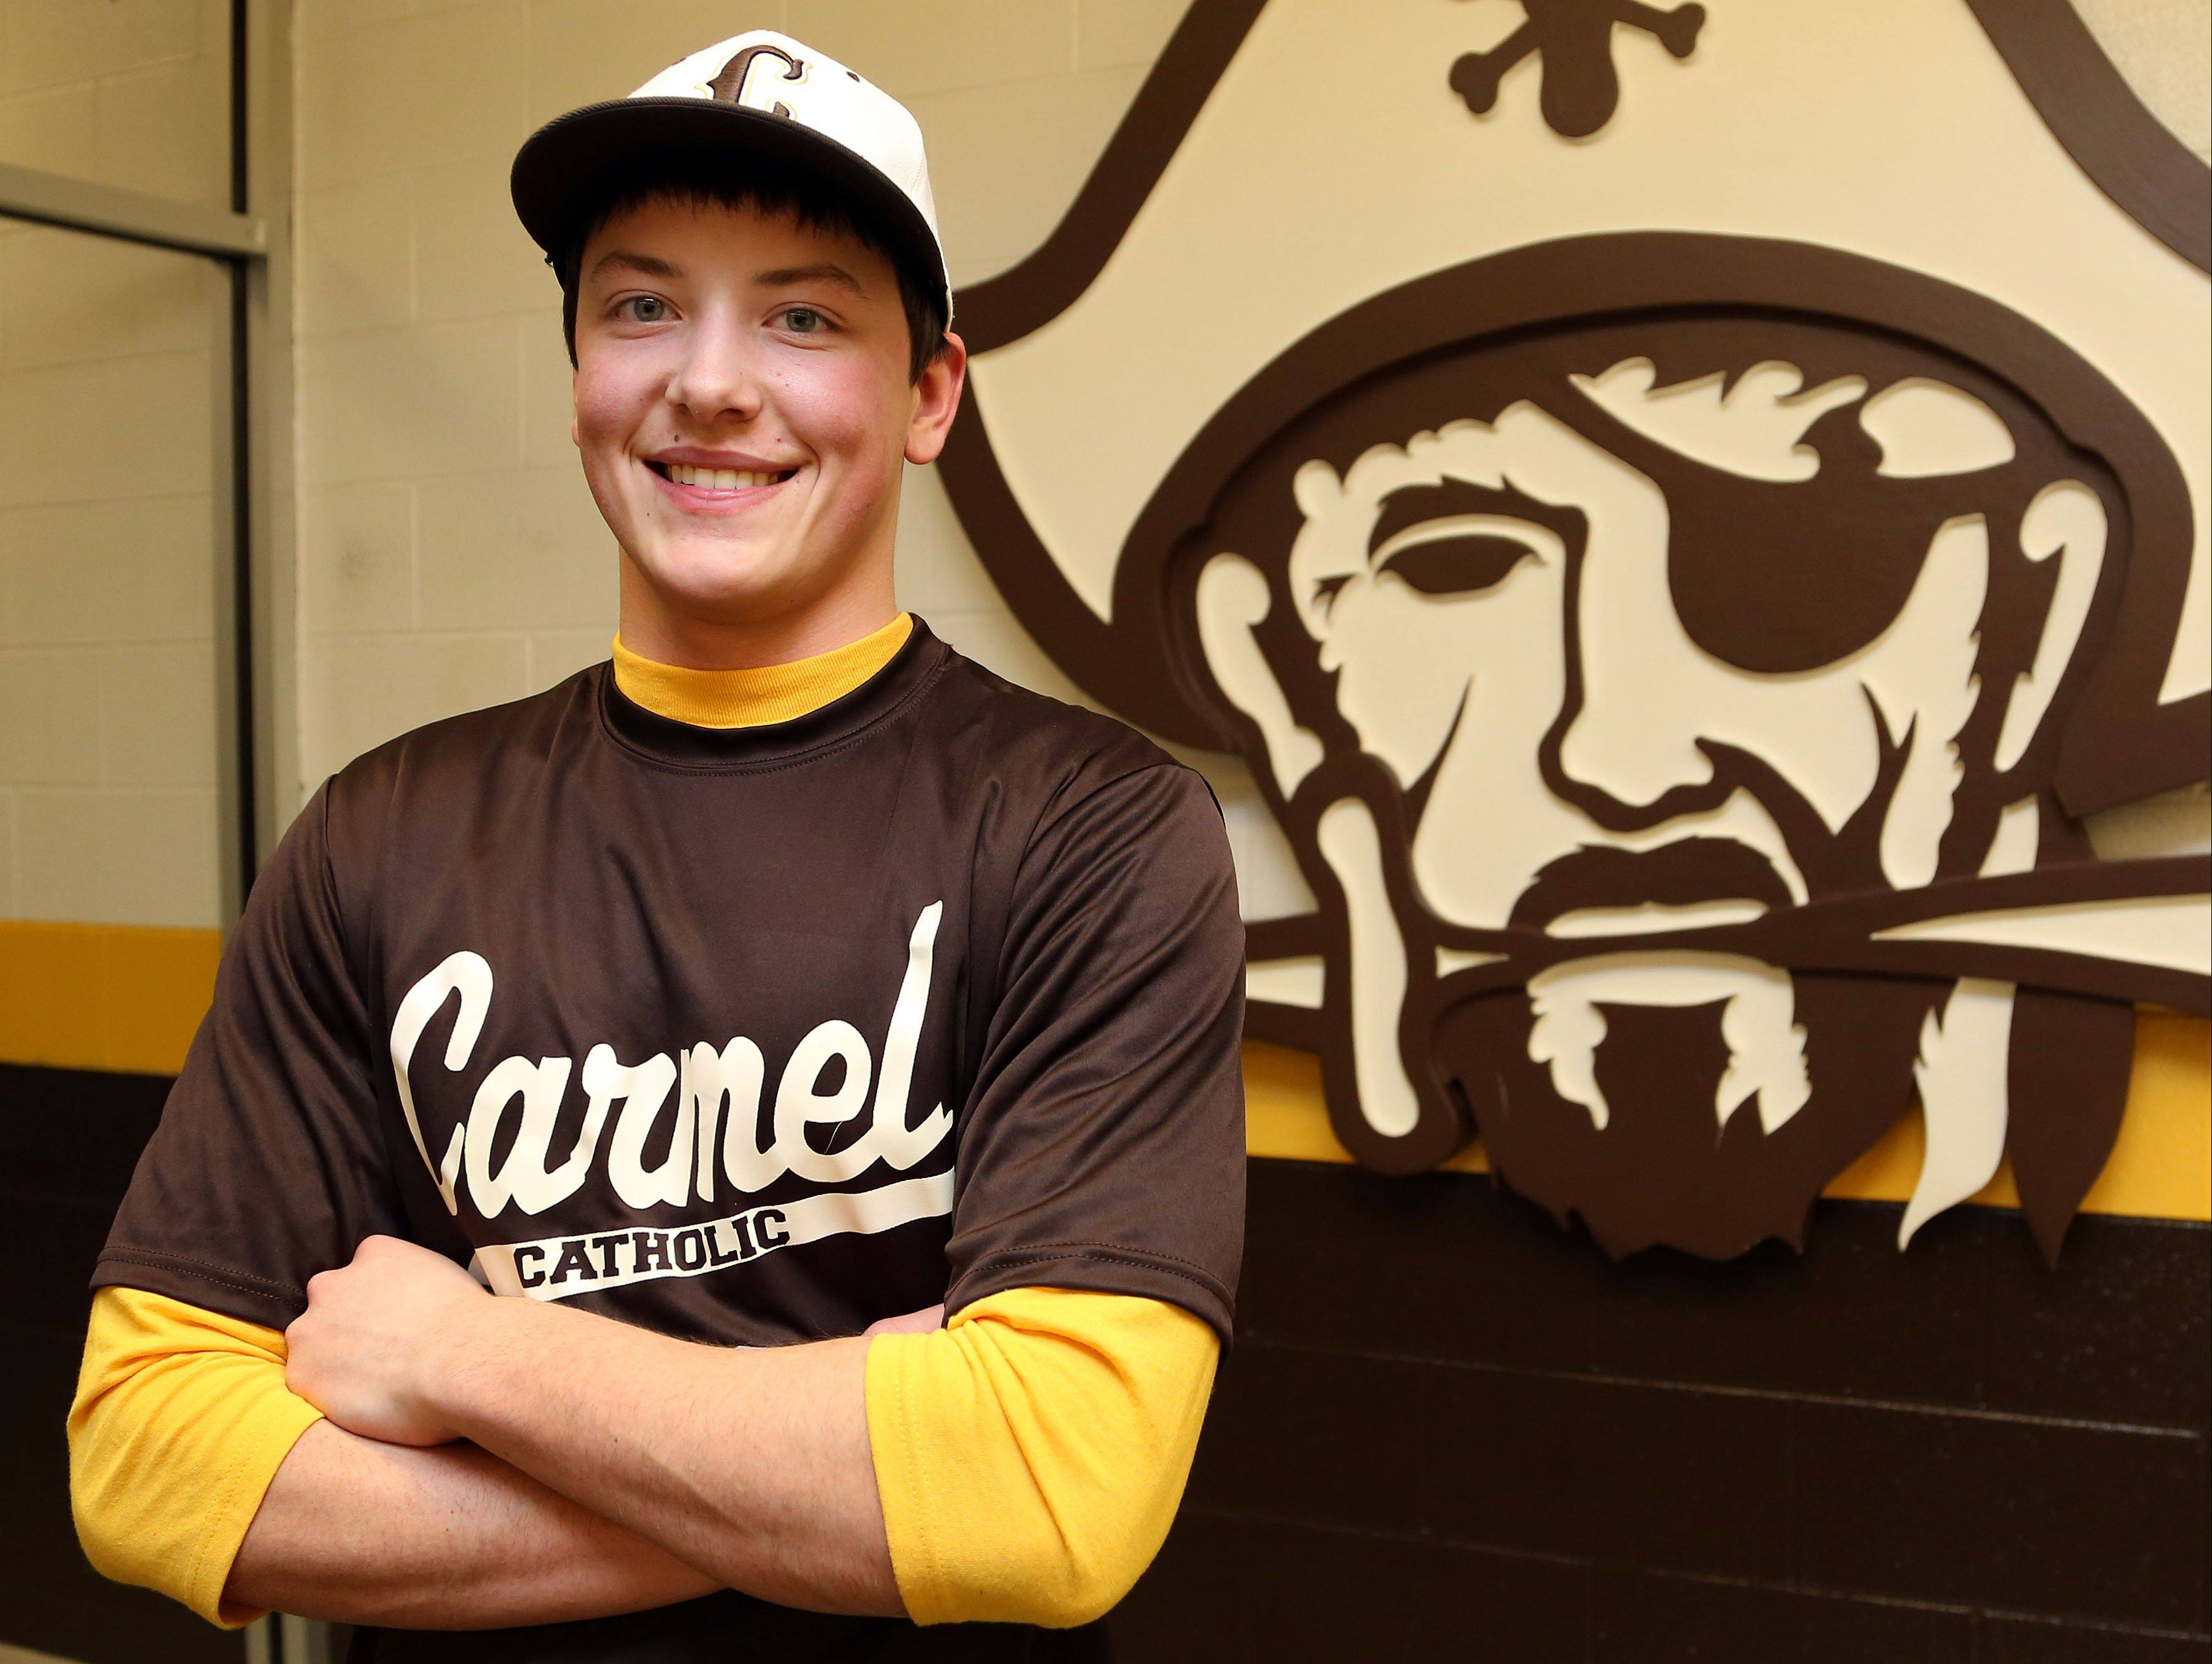 Carmel�s Matt Schafer blew out his knee two days before tryouts started, spoiling his senior season. But he�s proving to be an inspiration as the team�s manager this spring.